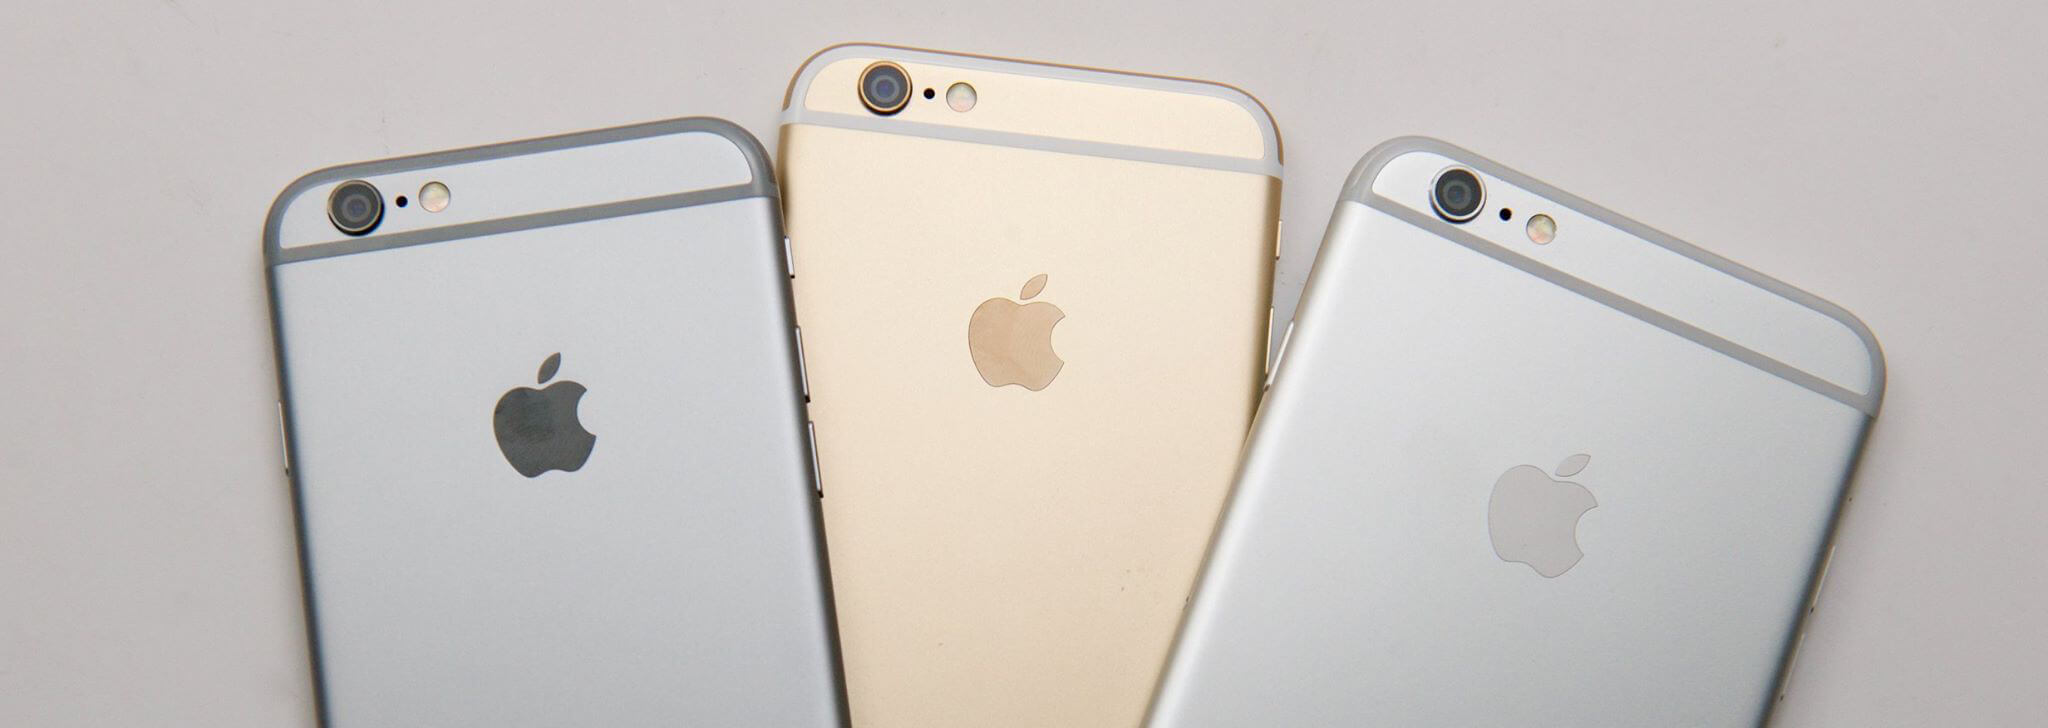 iPhone-6-Plus-vs.-iPhone-6S-Plus